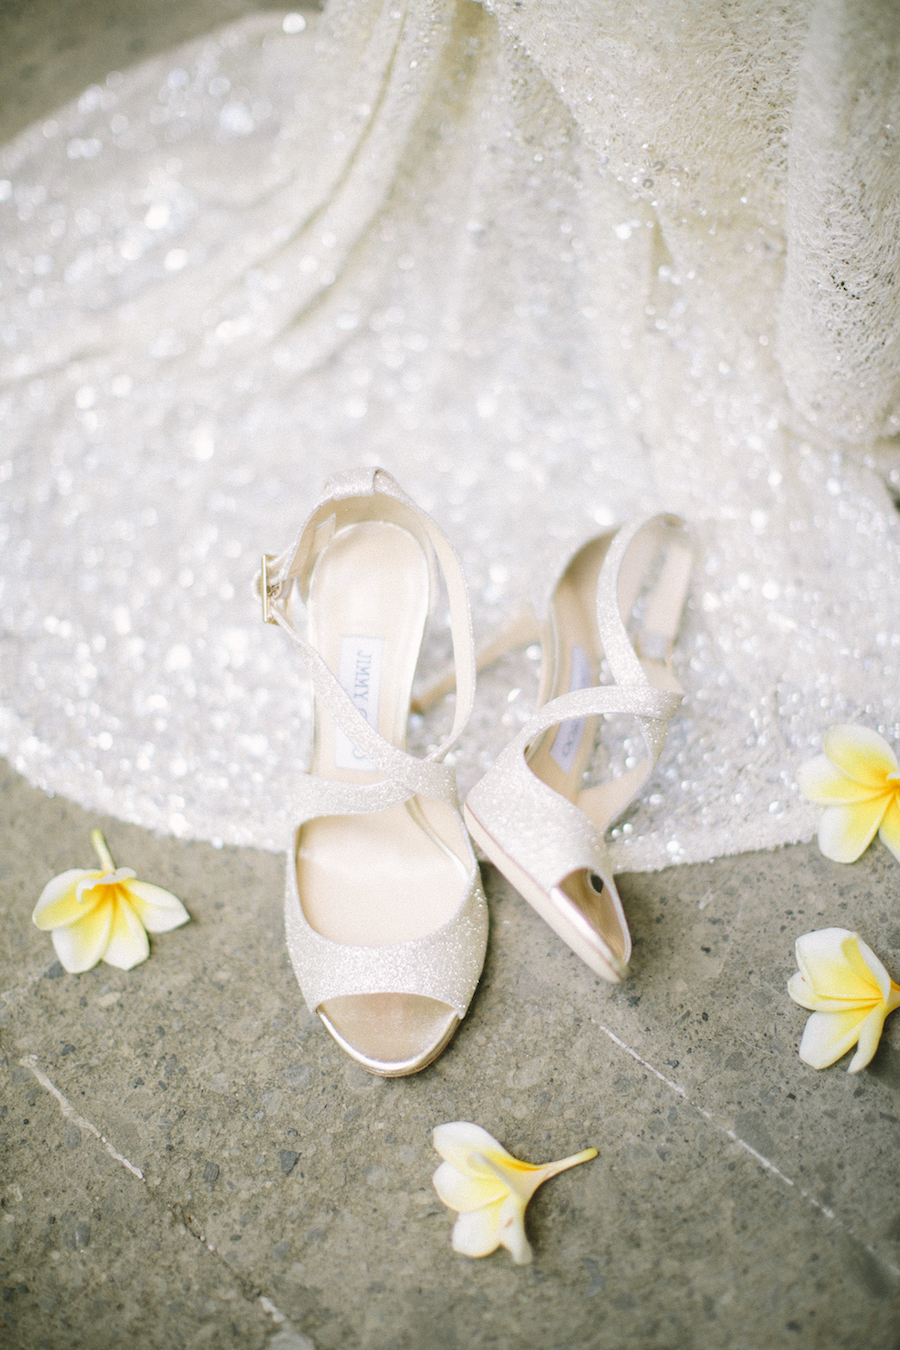 saya-photography-elegant-spring-rustic-provence-wedding-french-bali-23.jpg